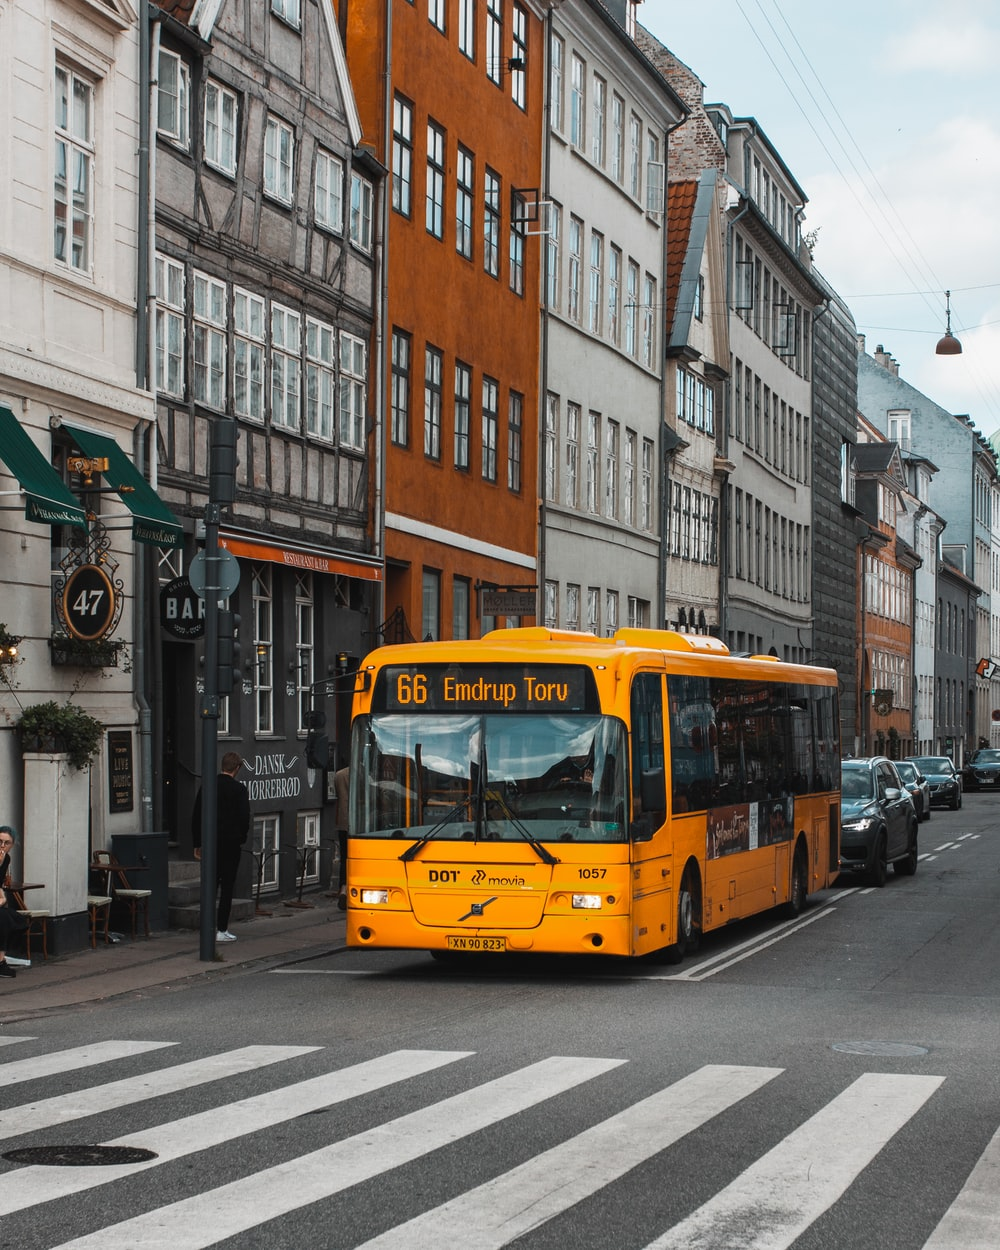 yellow and black bus on road at daytime